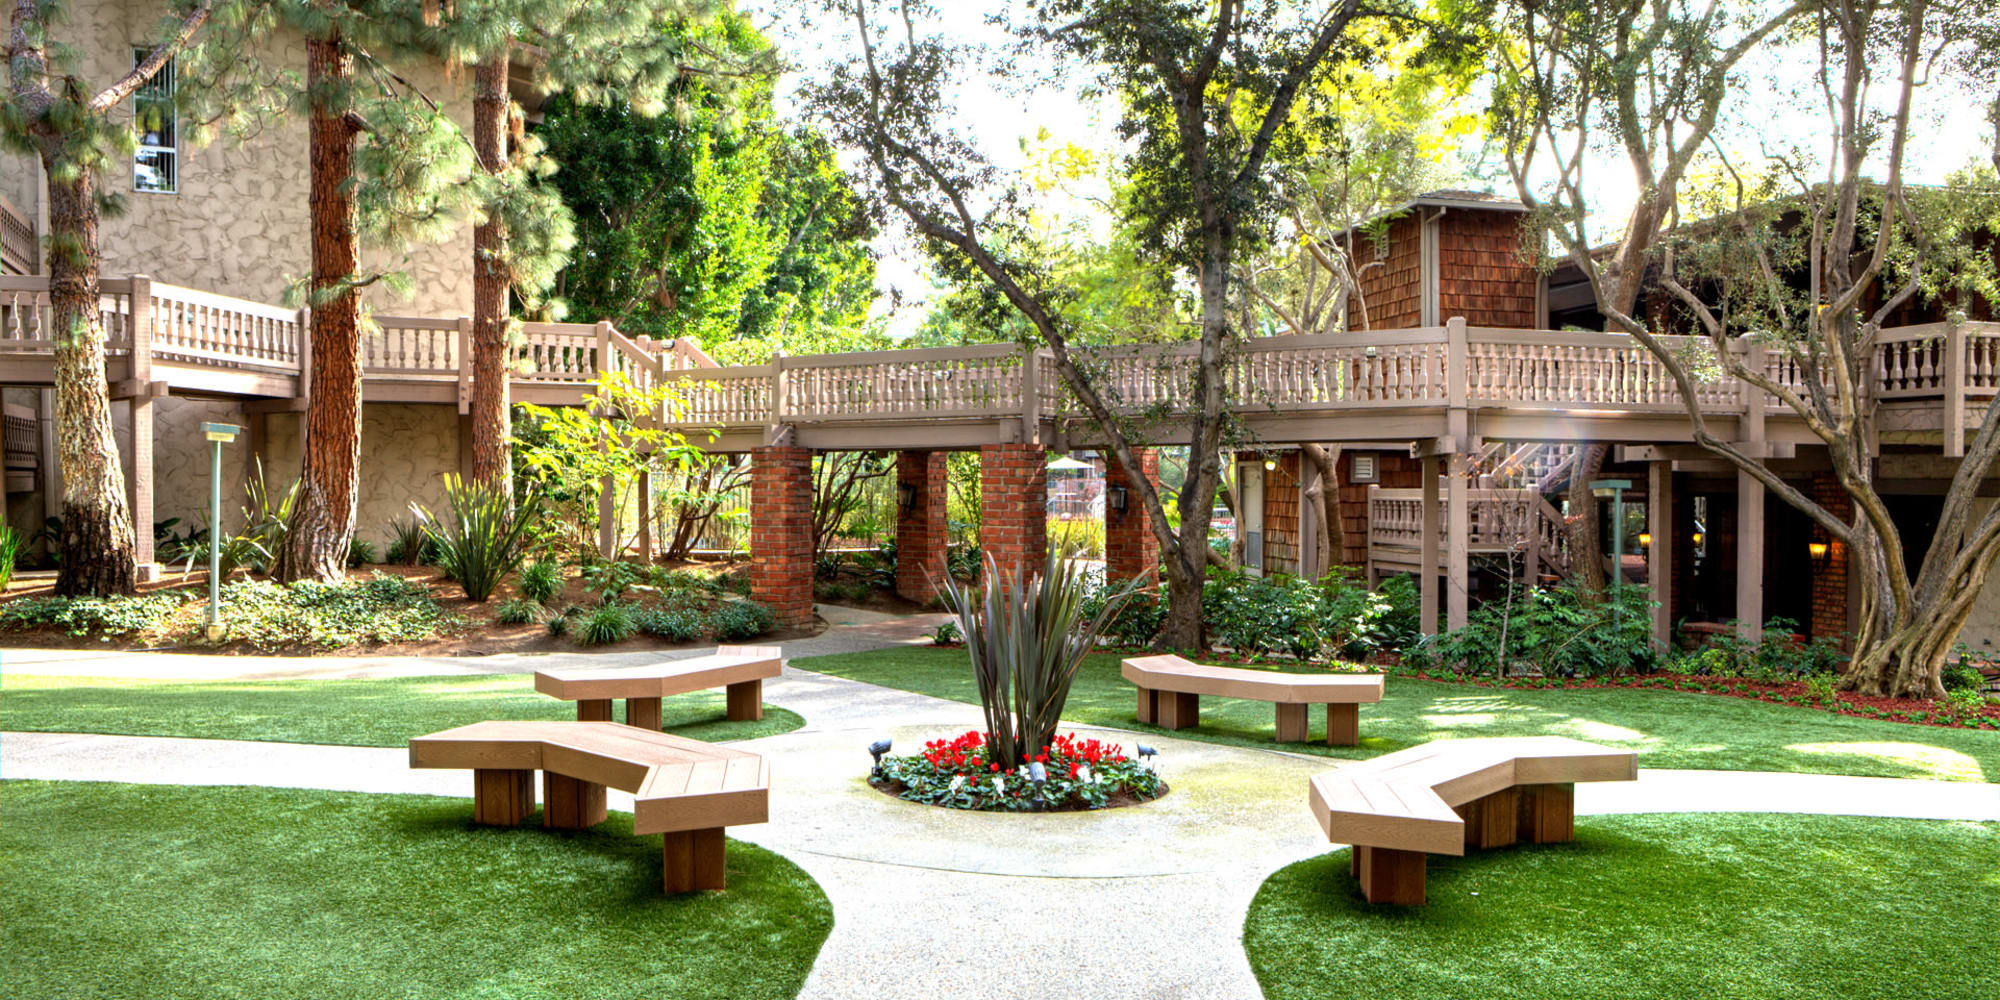 Bench seating at the center of a beautifully maintained courtyard at The Meadows in Culver City, California